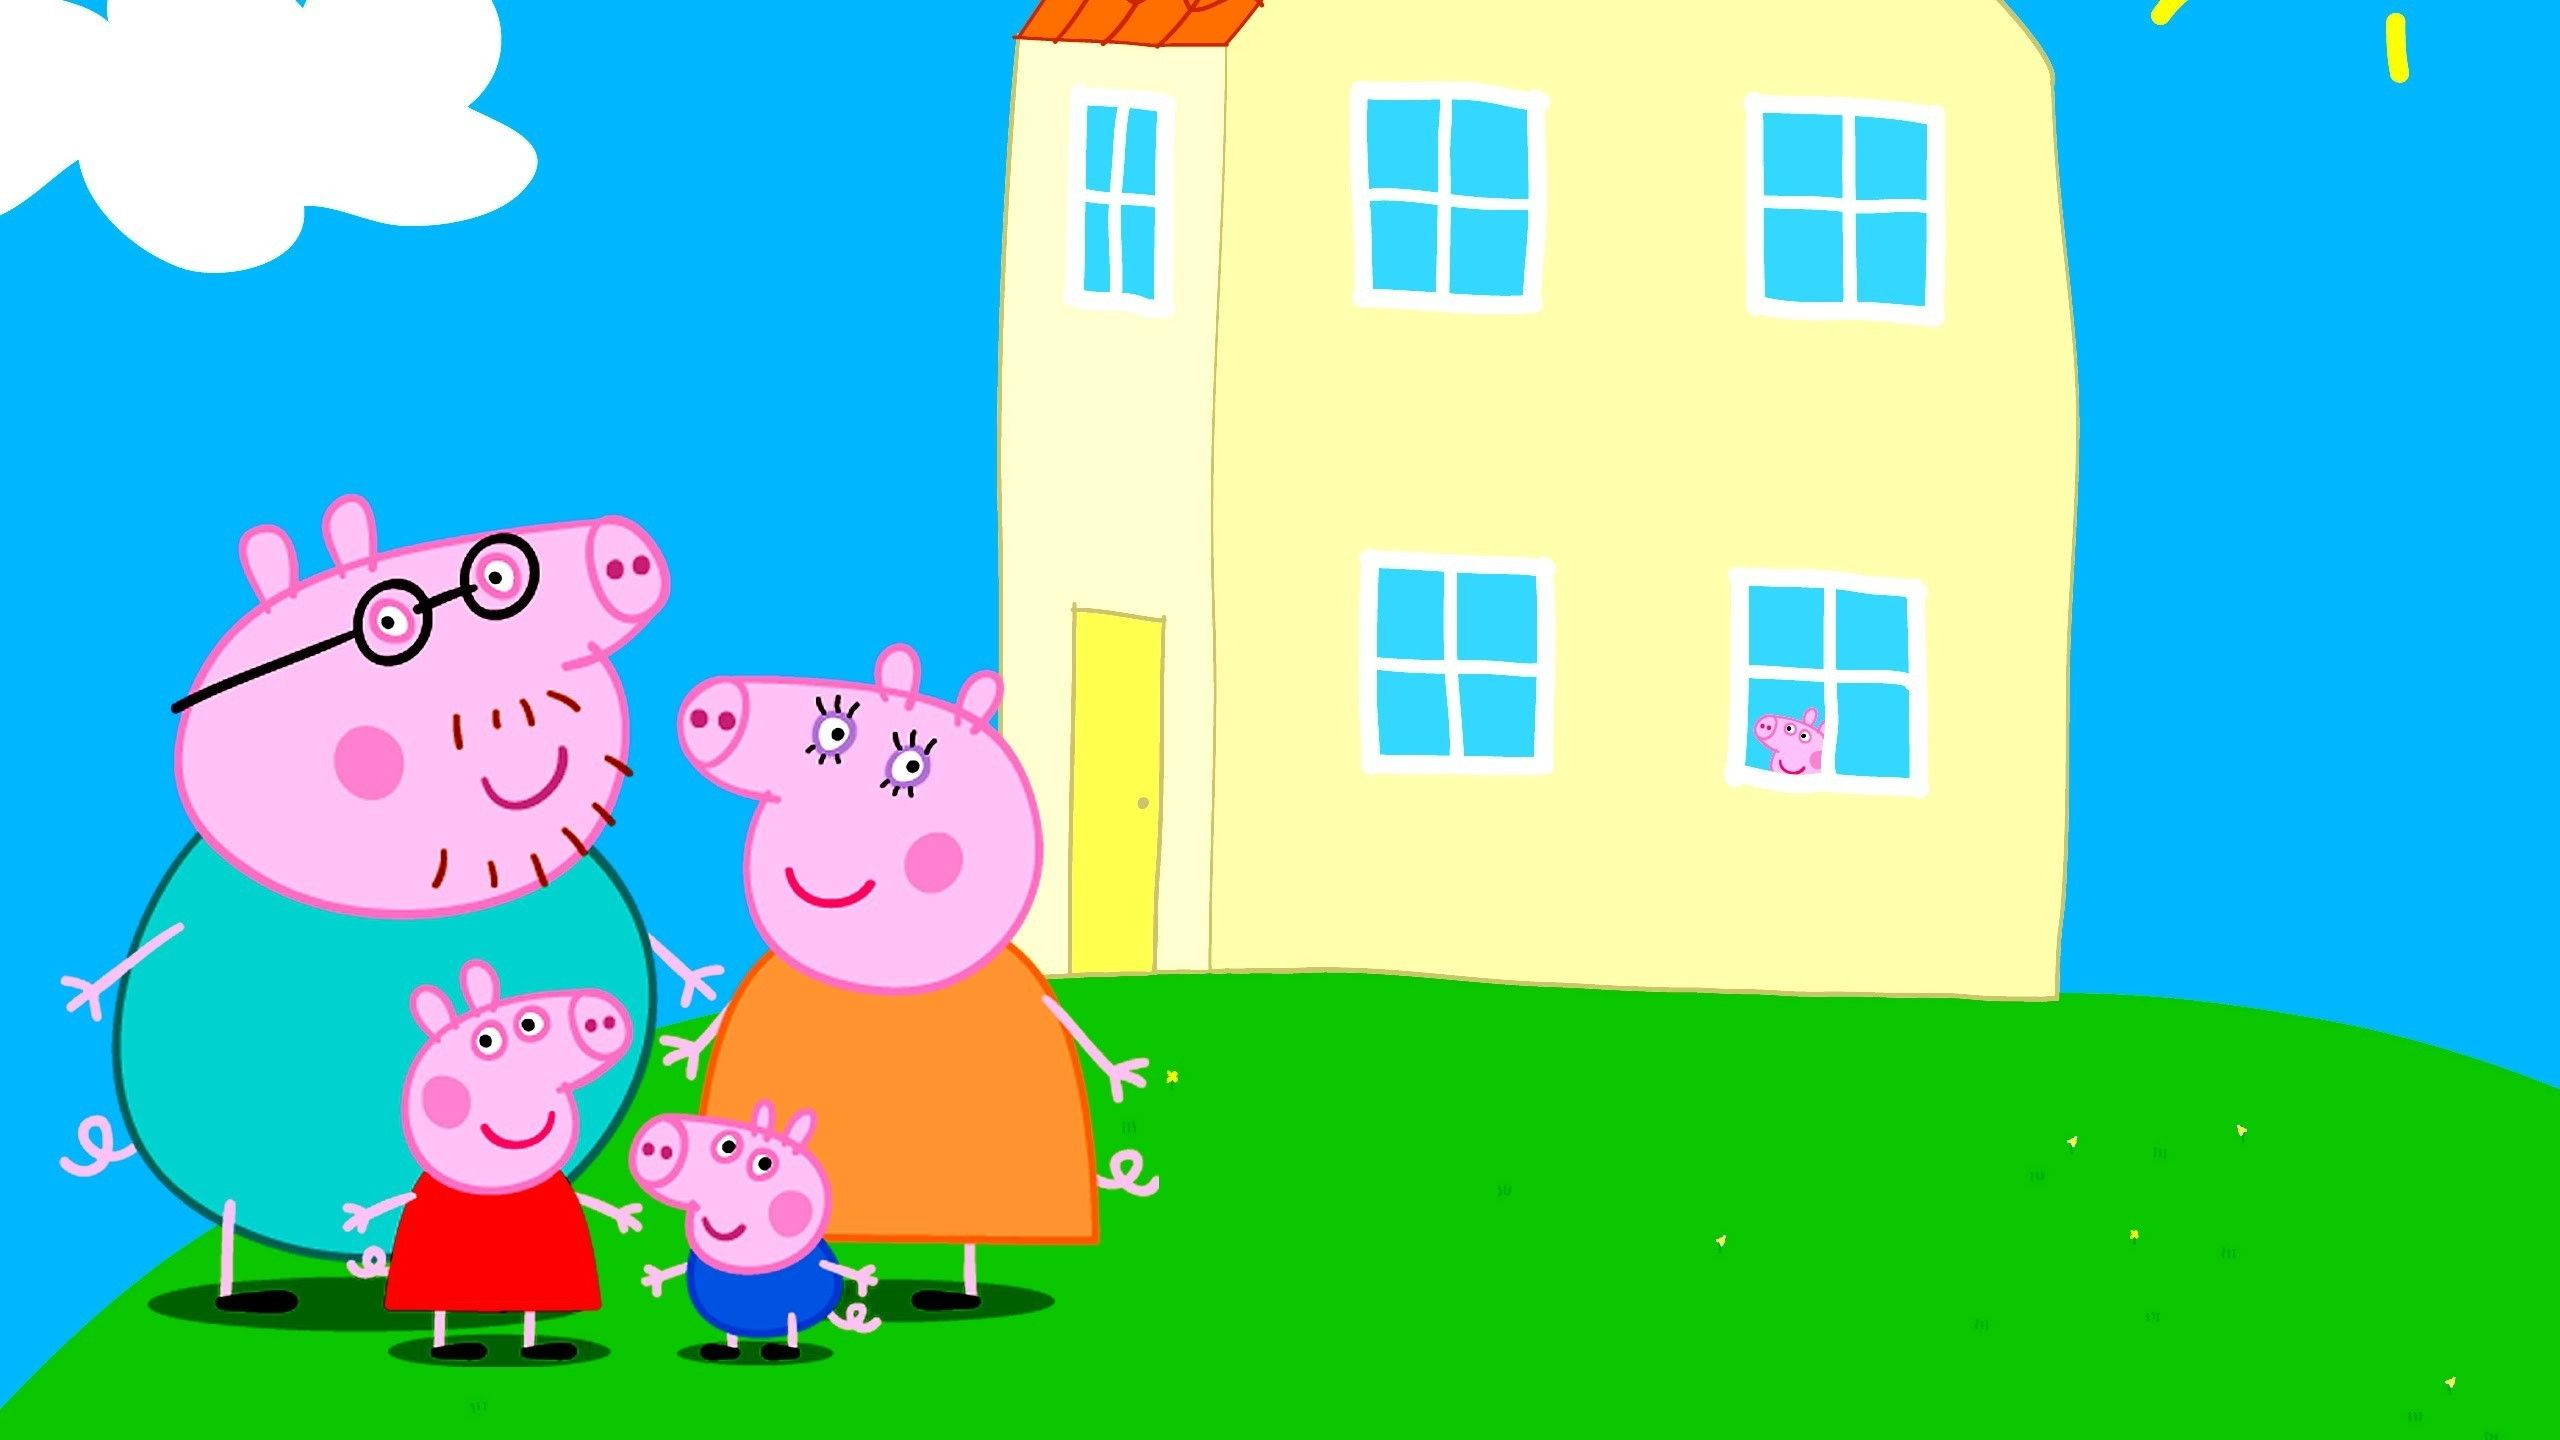 Peppa Pig Backgrounds 96 Wallpapers HD Wallpapers Peppa pig 2560x1440